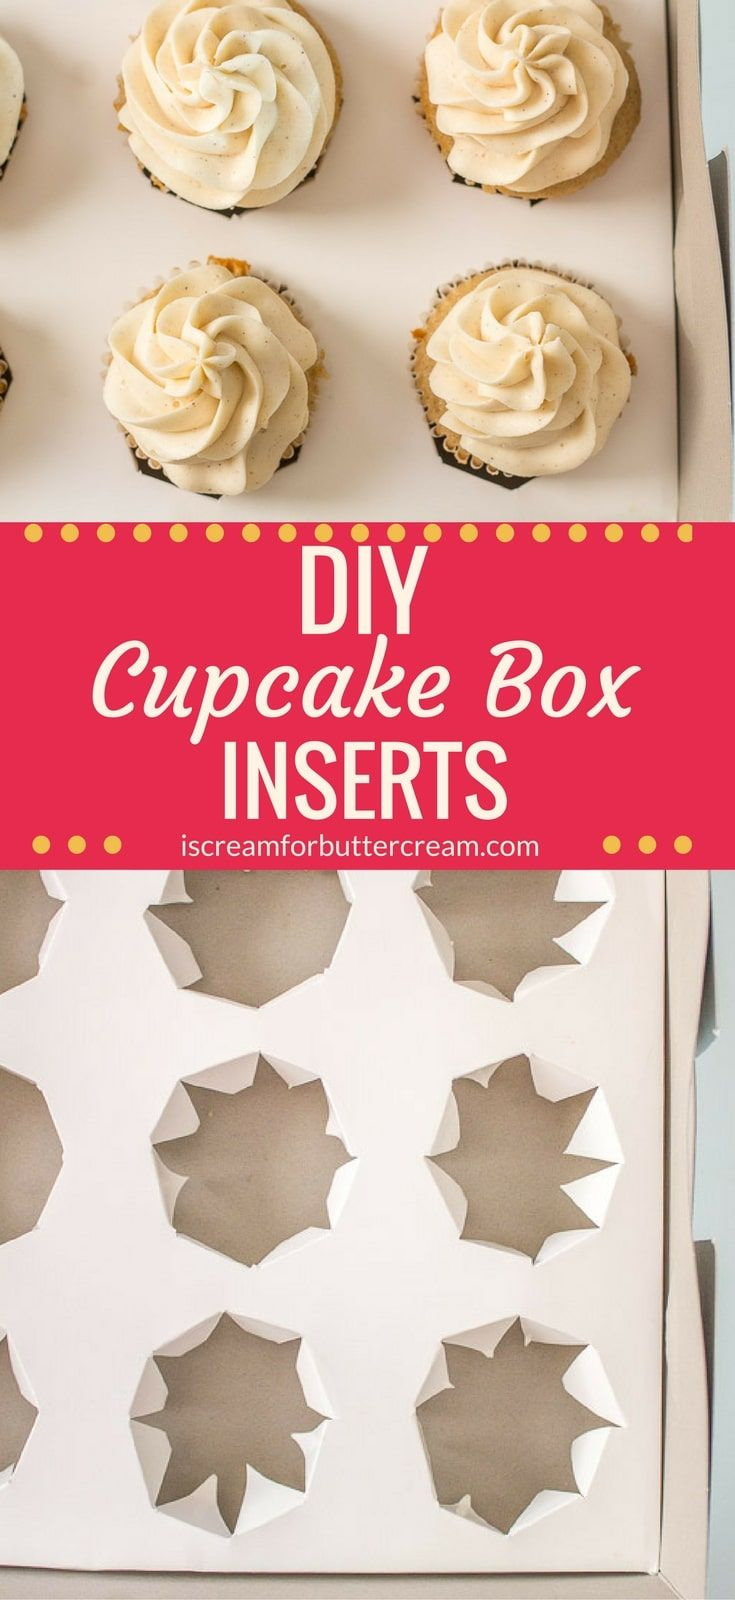 These DIY Cupcake Box Inserts are so easy to make. If you ever have trouble transporting cupcakes, these inserts will keep them from toppling over. They're inexpensive to make and you can virtually use any box you have. #cupcakeinserts #bakinghacks